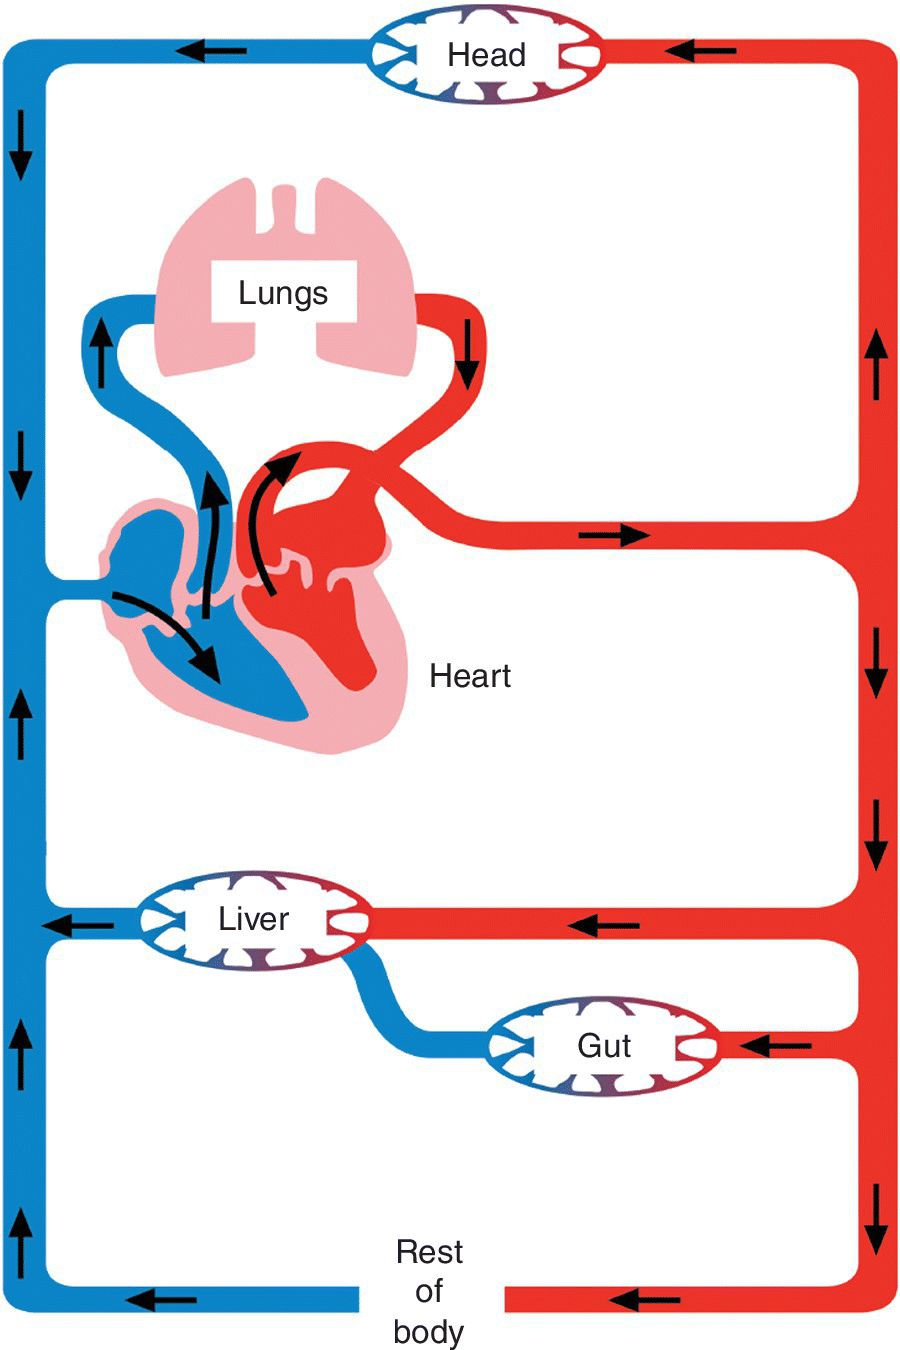 Schematic illustrating the circulation of blood through the vascular system. Arrows depict blood flow into the head, lungs, heart, liver, gut and the rest of the body.